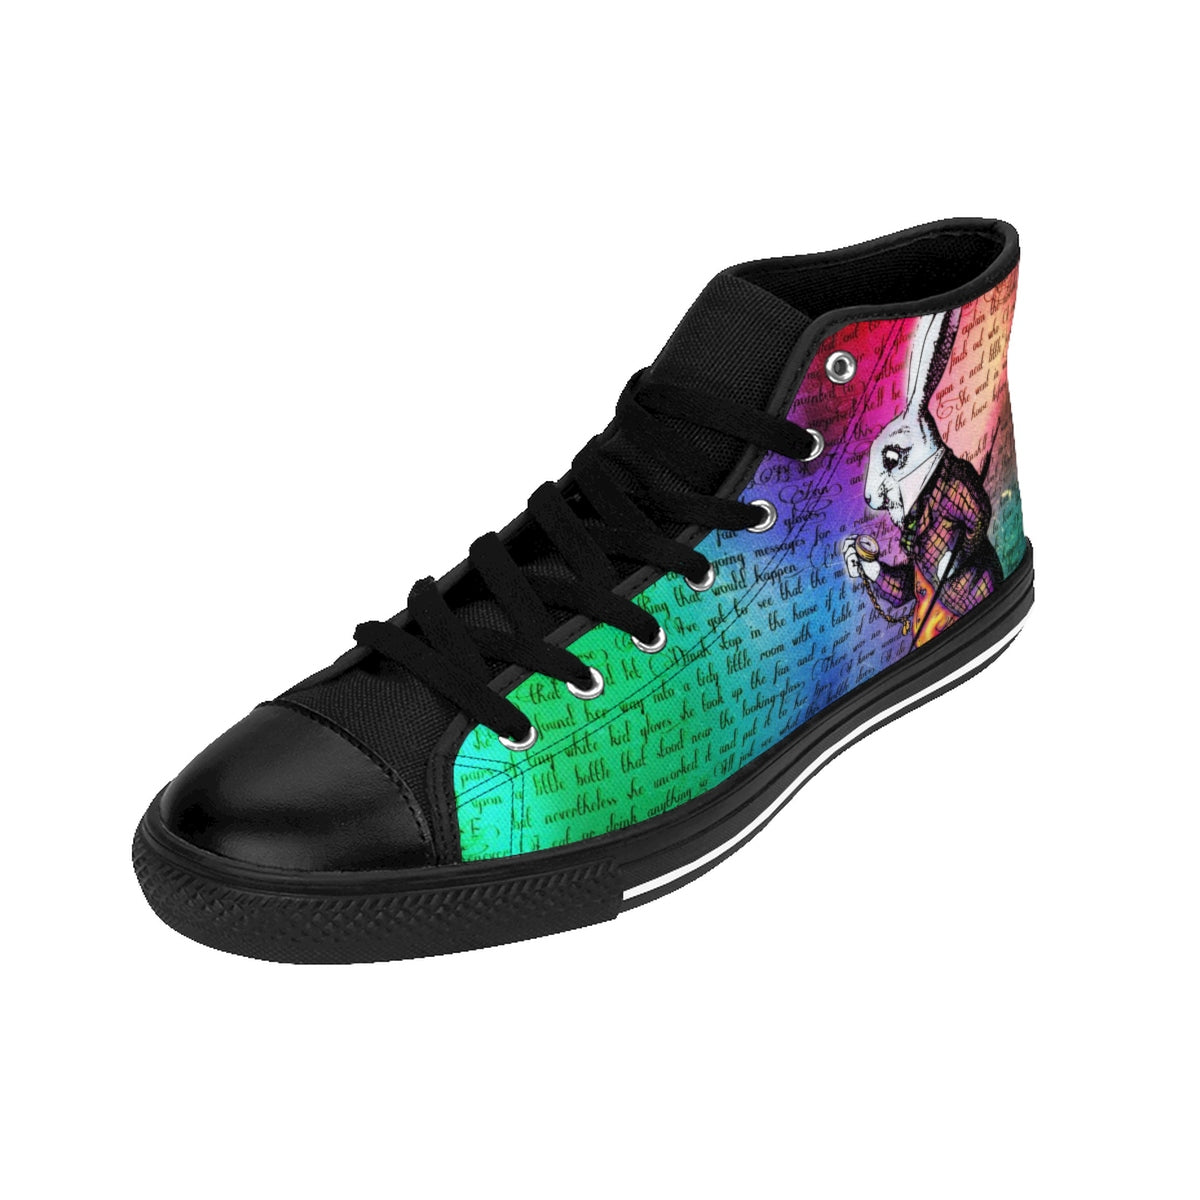 White Rabbit Women's Sneakers-Starry Meadows